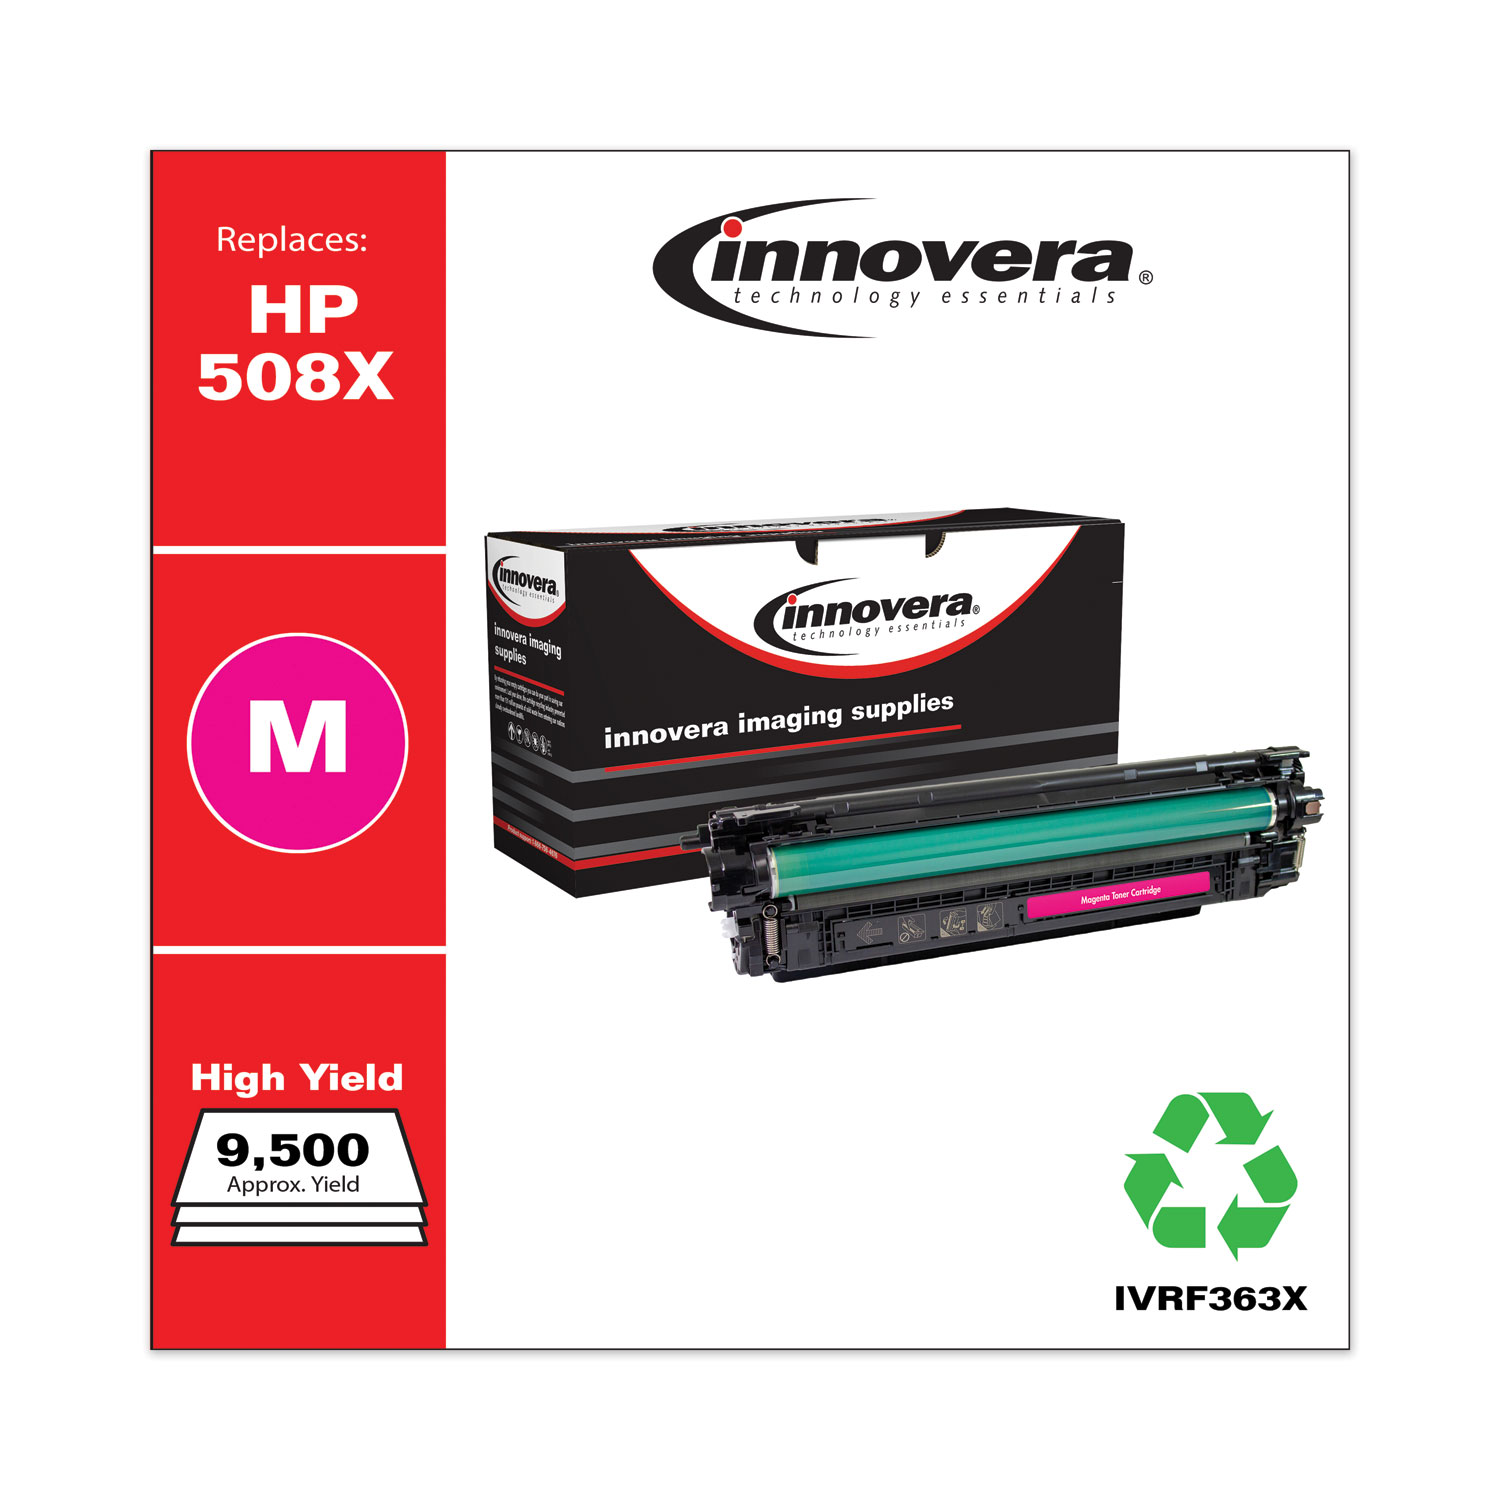 Remanufactured Magenta High-Yield Toner, Replacement for HP 508X (CF363X), 9,500 Page-Yield IVRF363X